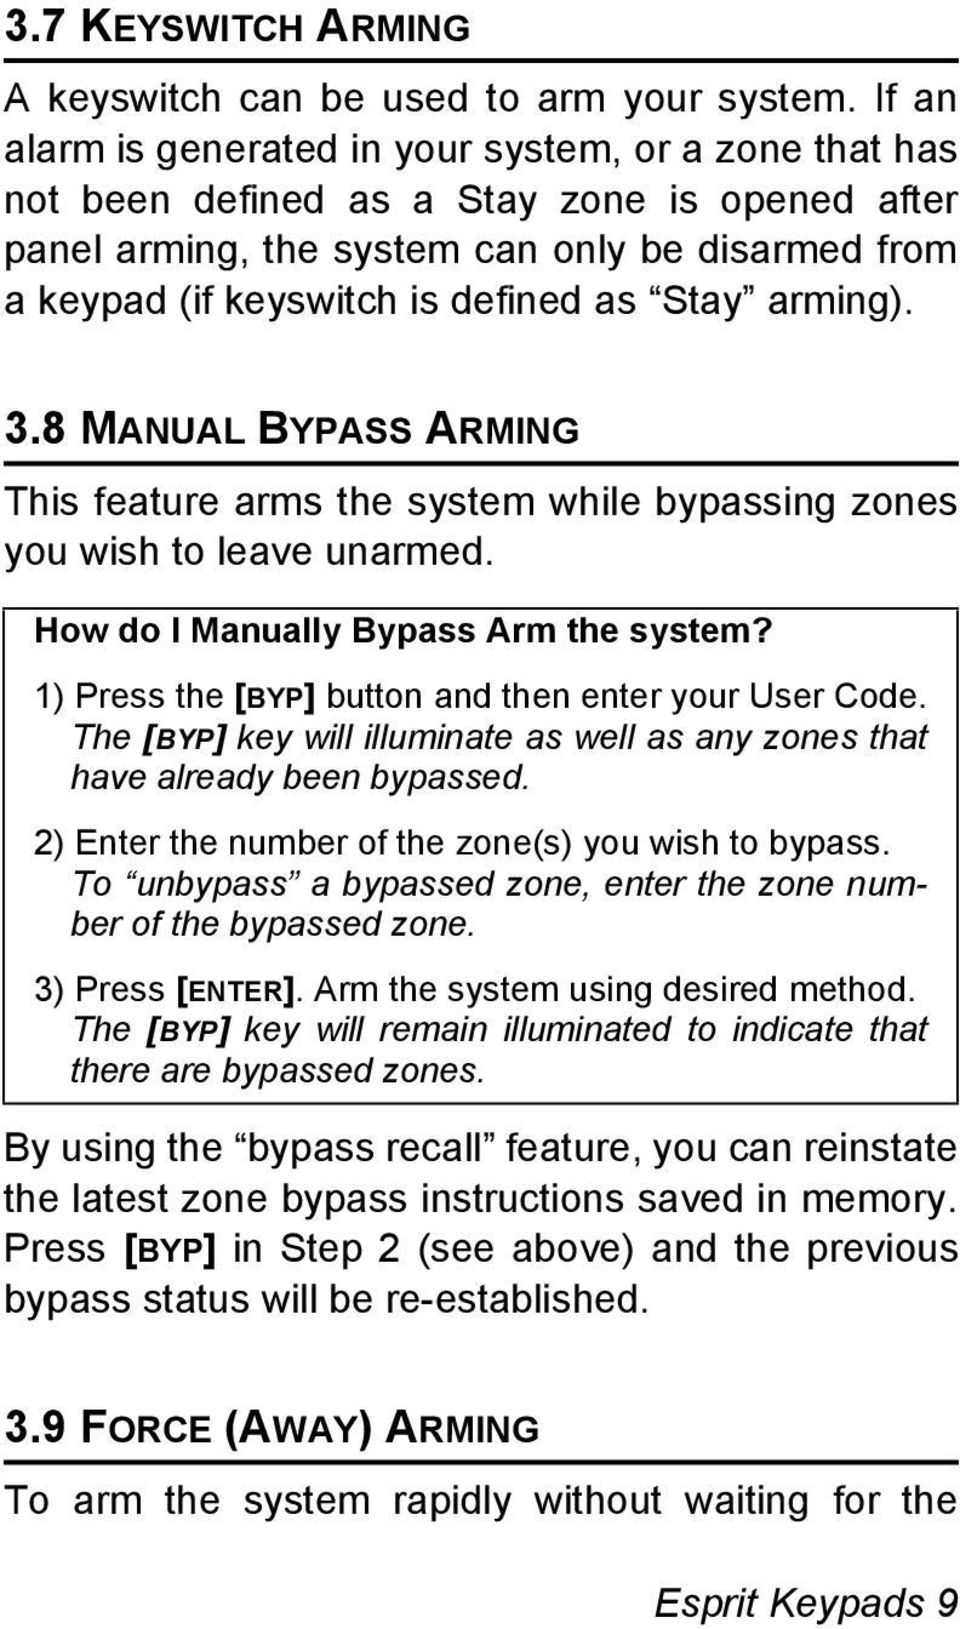 Stay arming). 3.8 MANUAL BYPASS ARMING This feature arms the system while bypassing zones you wish to leave unarmed. How do I Manually Bypass Arm the system?